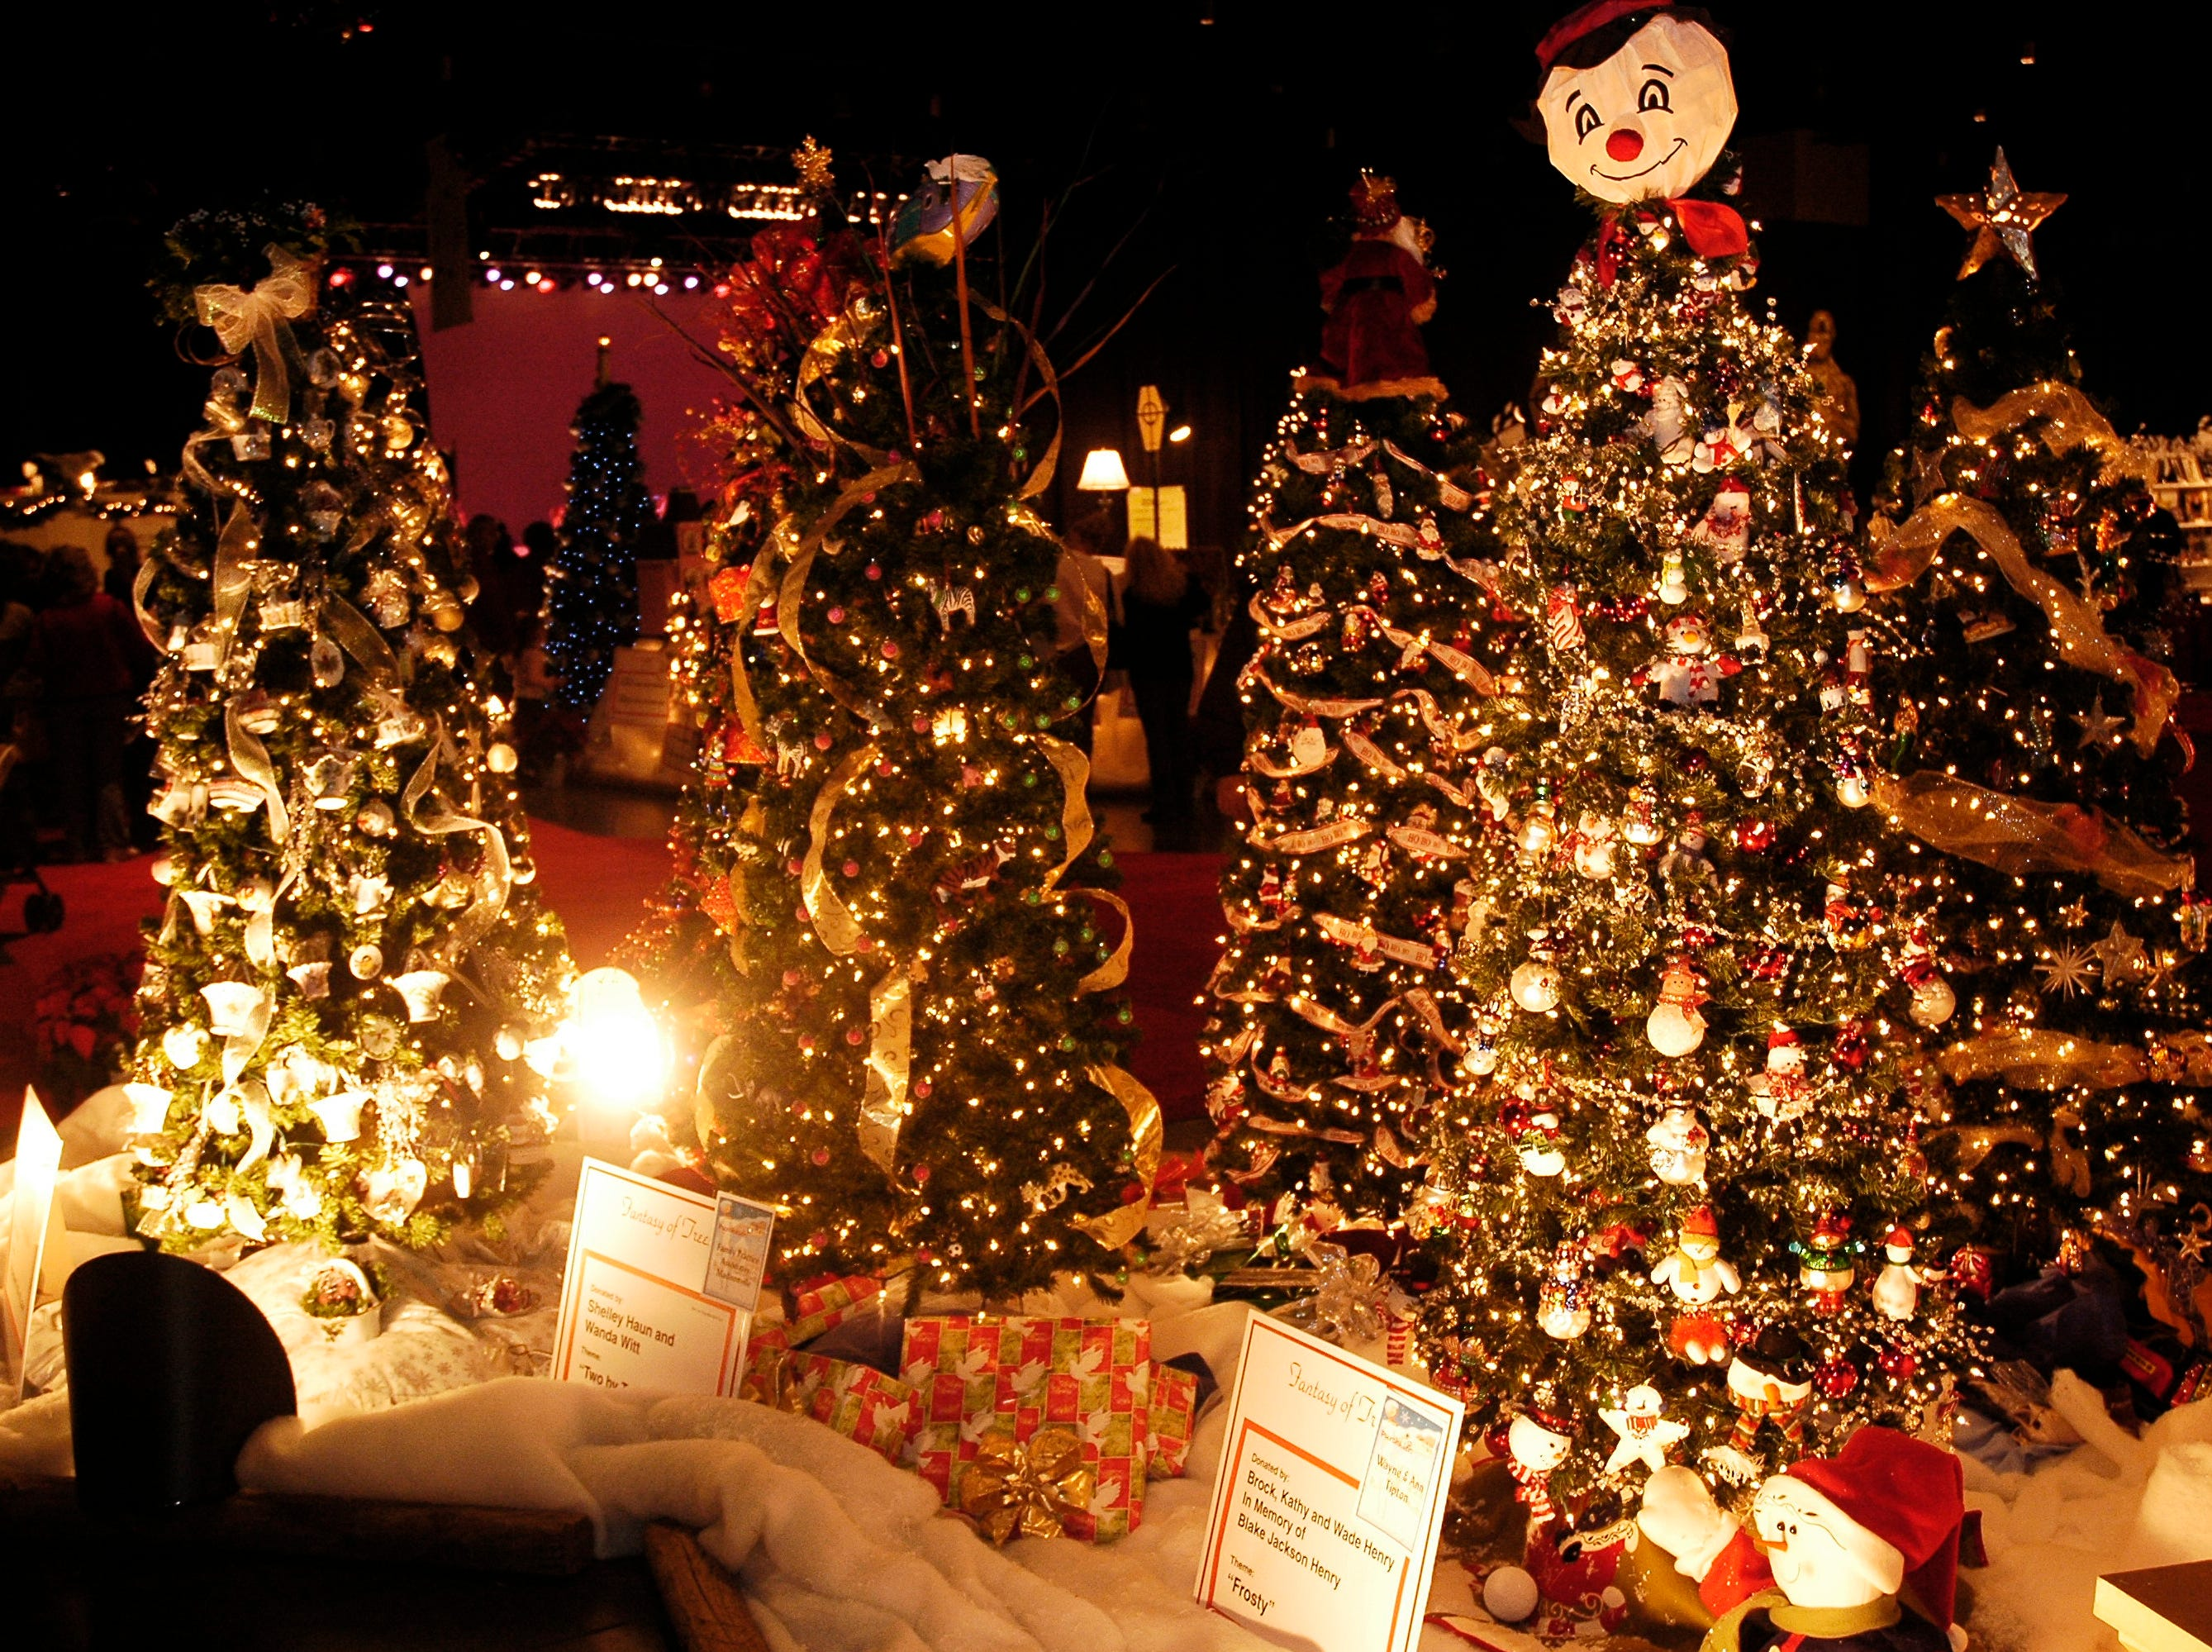 """Living--News Sentinel photo by Bryan Campbell--Decorated trees at the 21st annual Fantasy of Trees at the Knoxville Convention Center, a fund raiser for the East Tennessee Childrens Hospital.  The tree titled """"Frosty"""" was donated by Brock, Kathy, and Wade Henry.  11/26/05"""